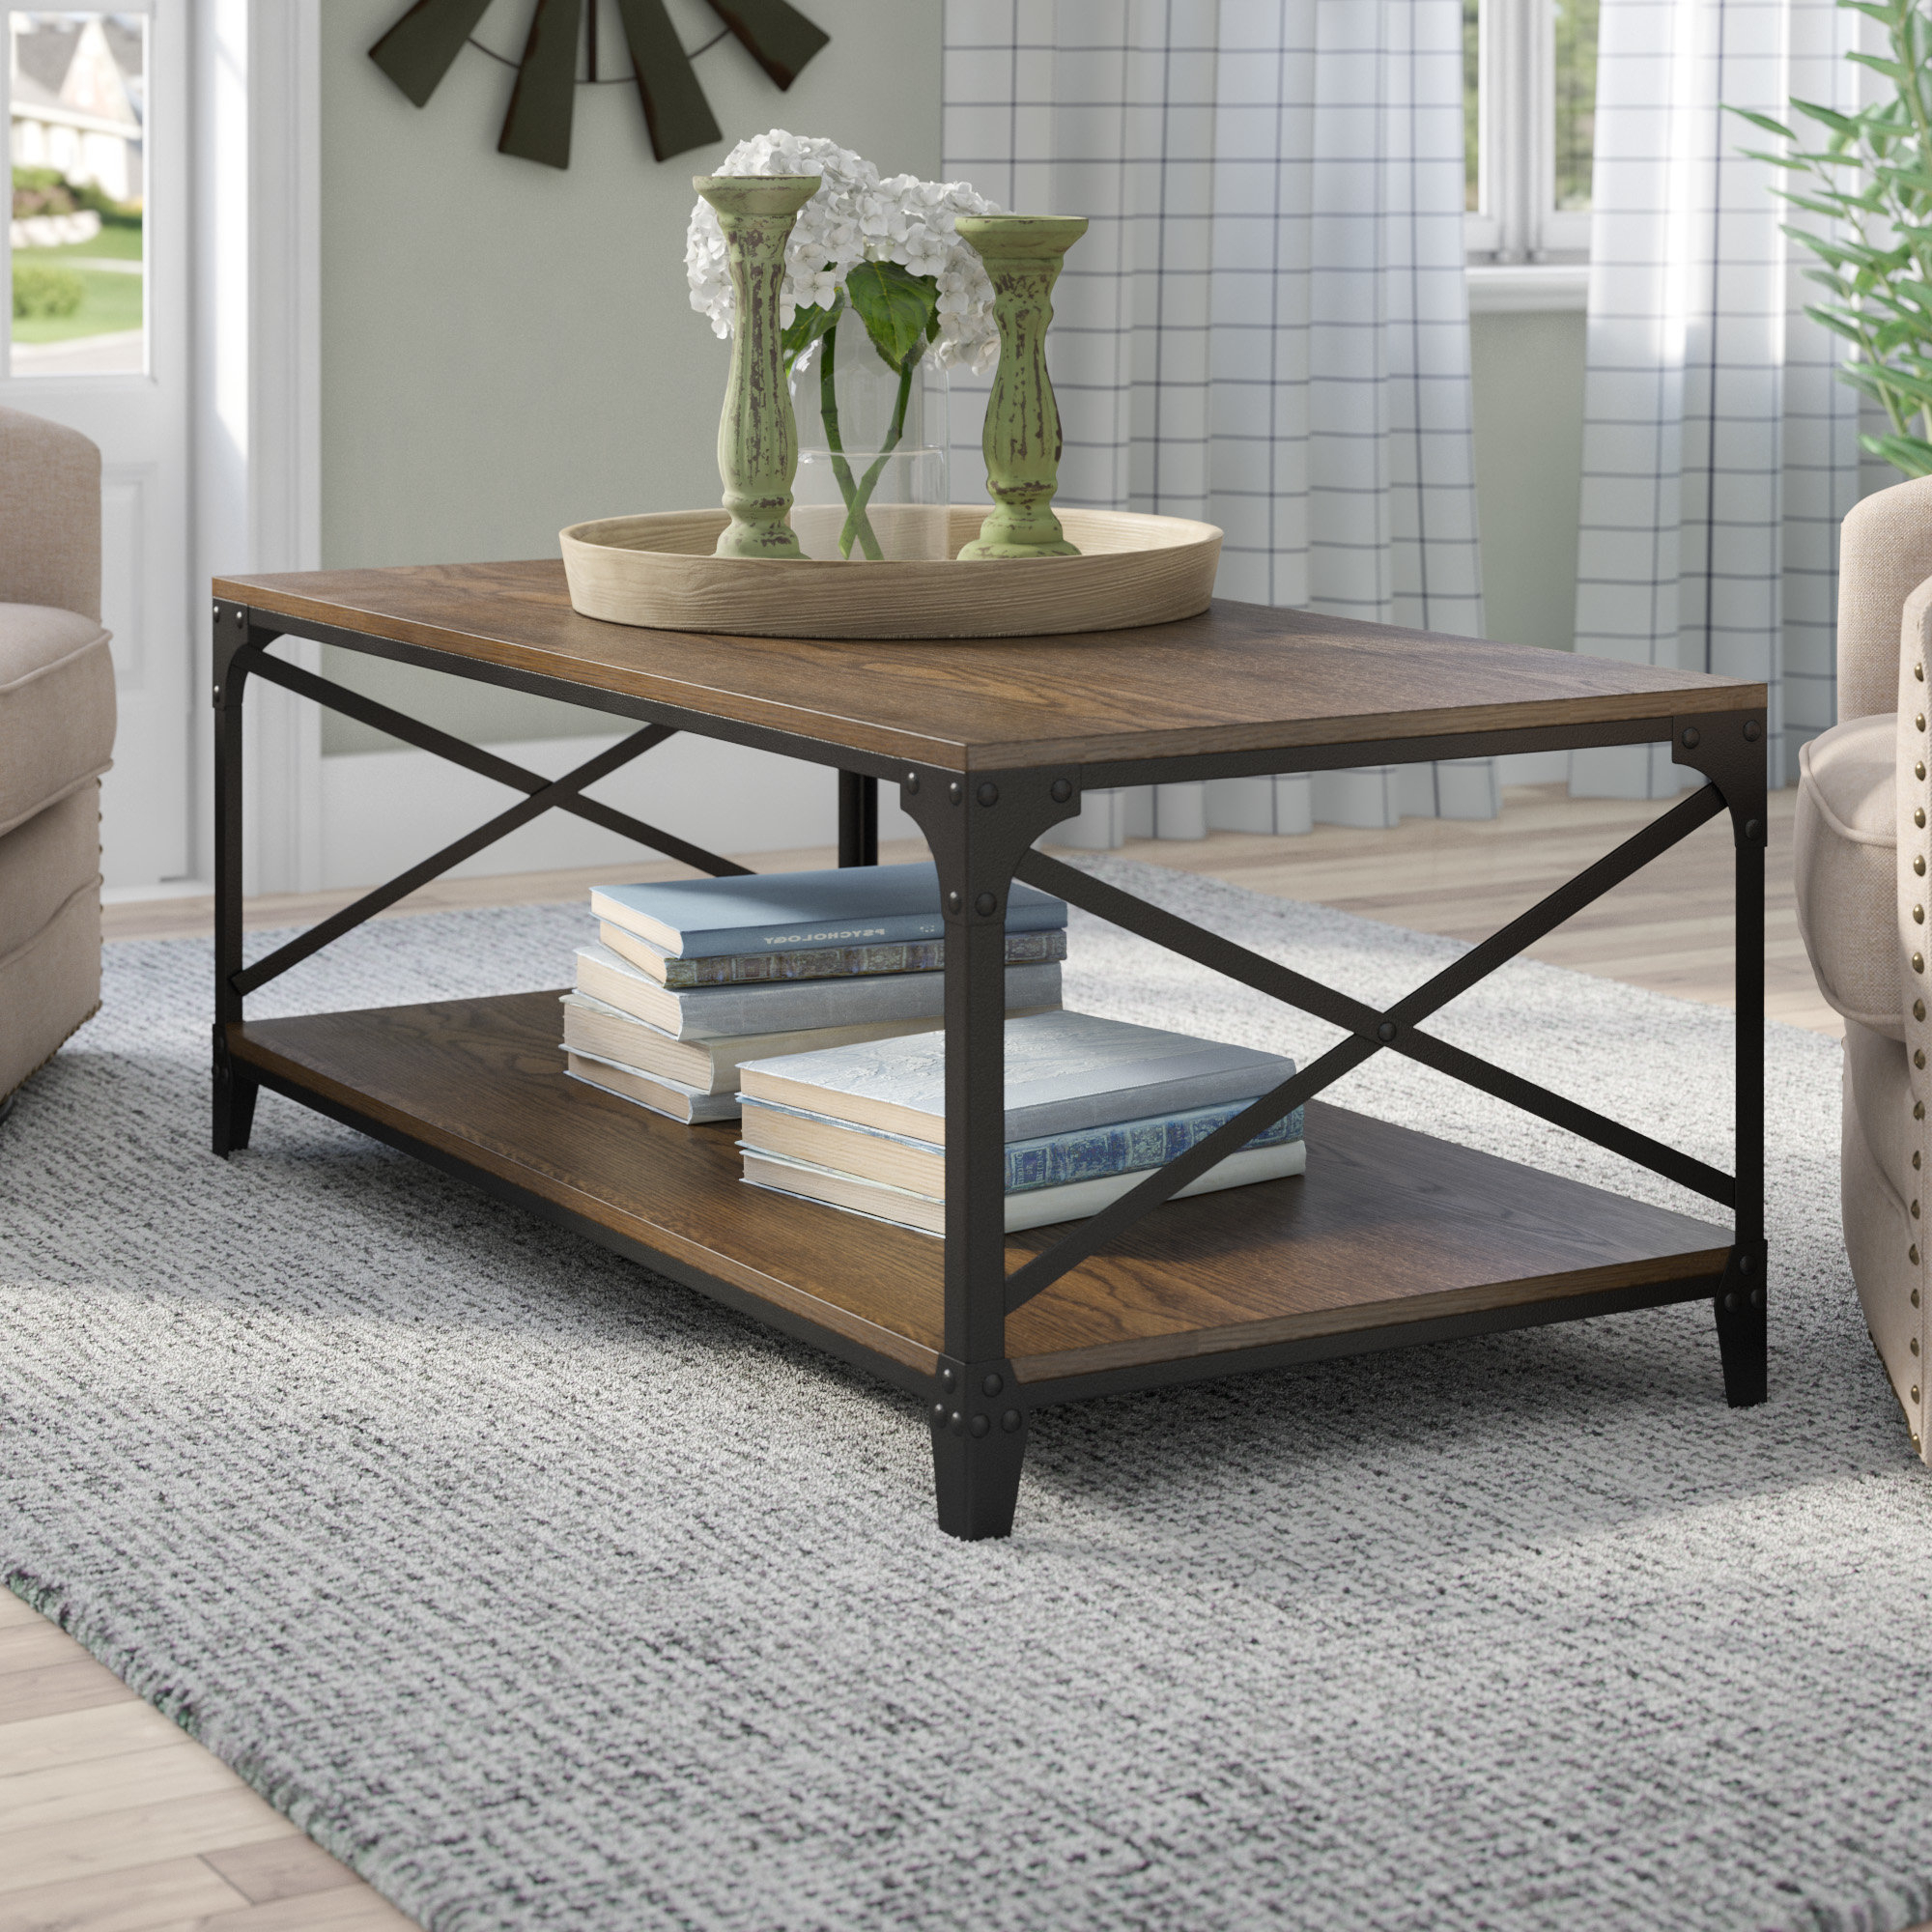 Wayfair Throughout Well Liked Large Scale Chinese Farmhouse Coffee Tables (View 14 of 20)